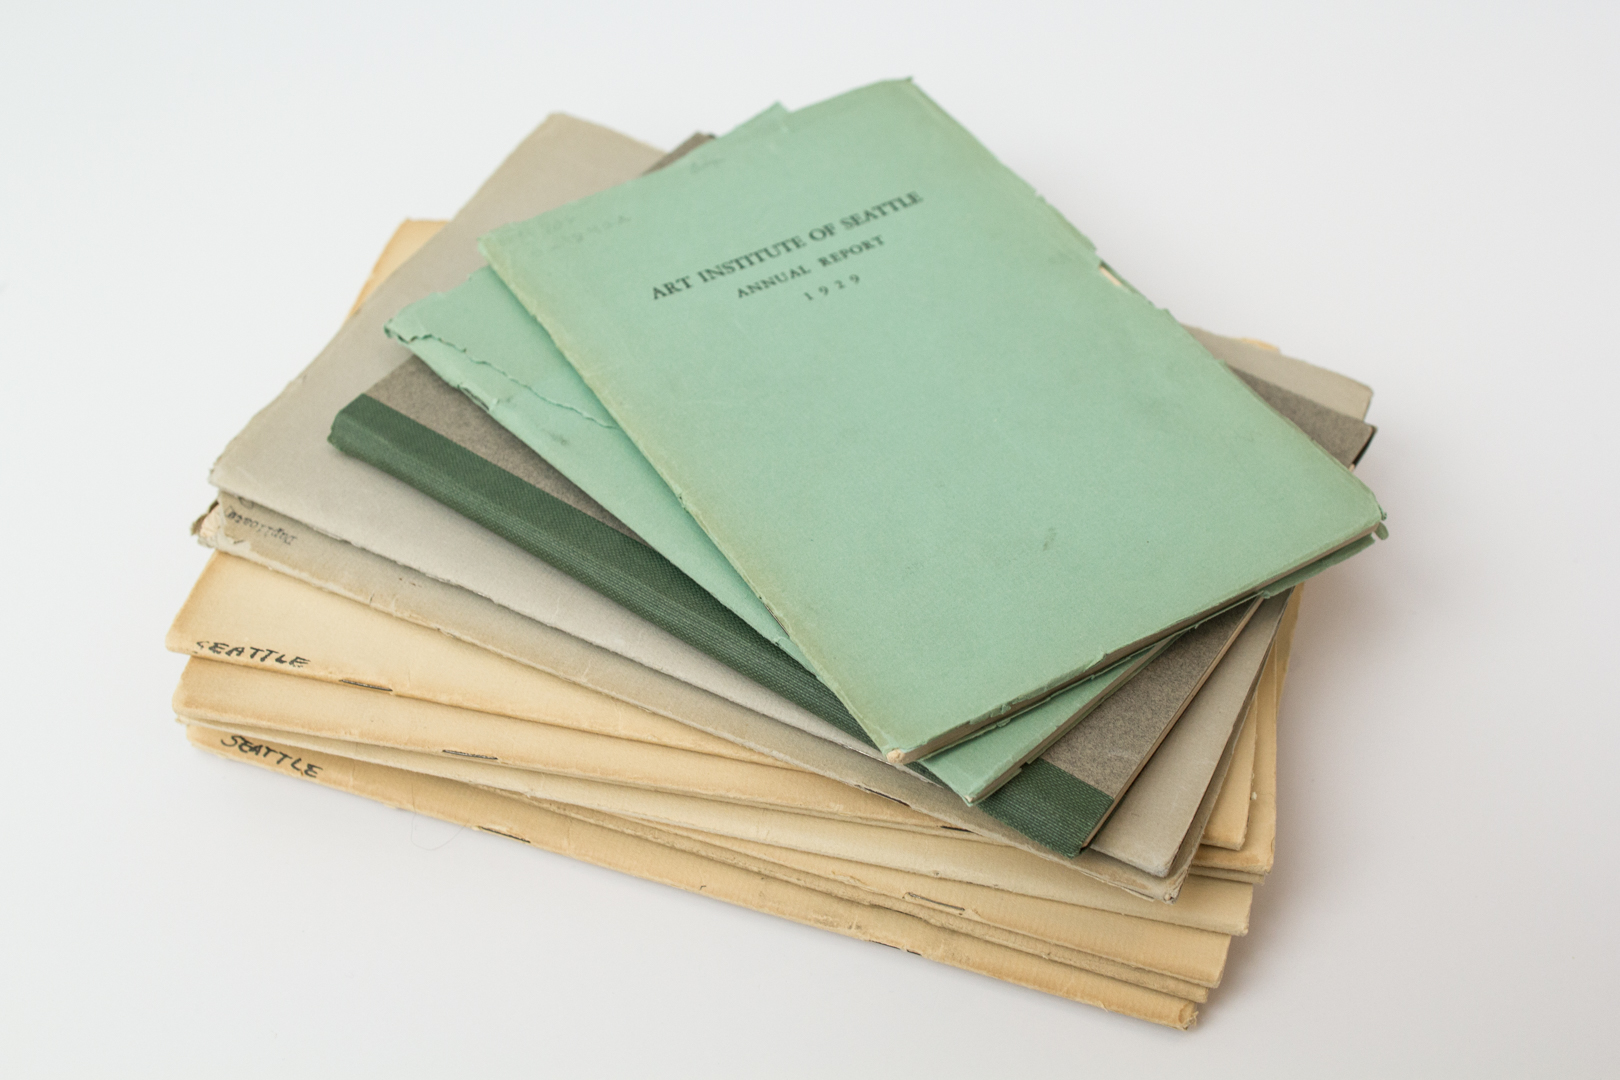 Before SAM: Publications from the Seattle Fine Arts Society and the Art Institute of Seattle